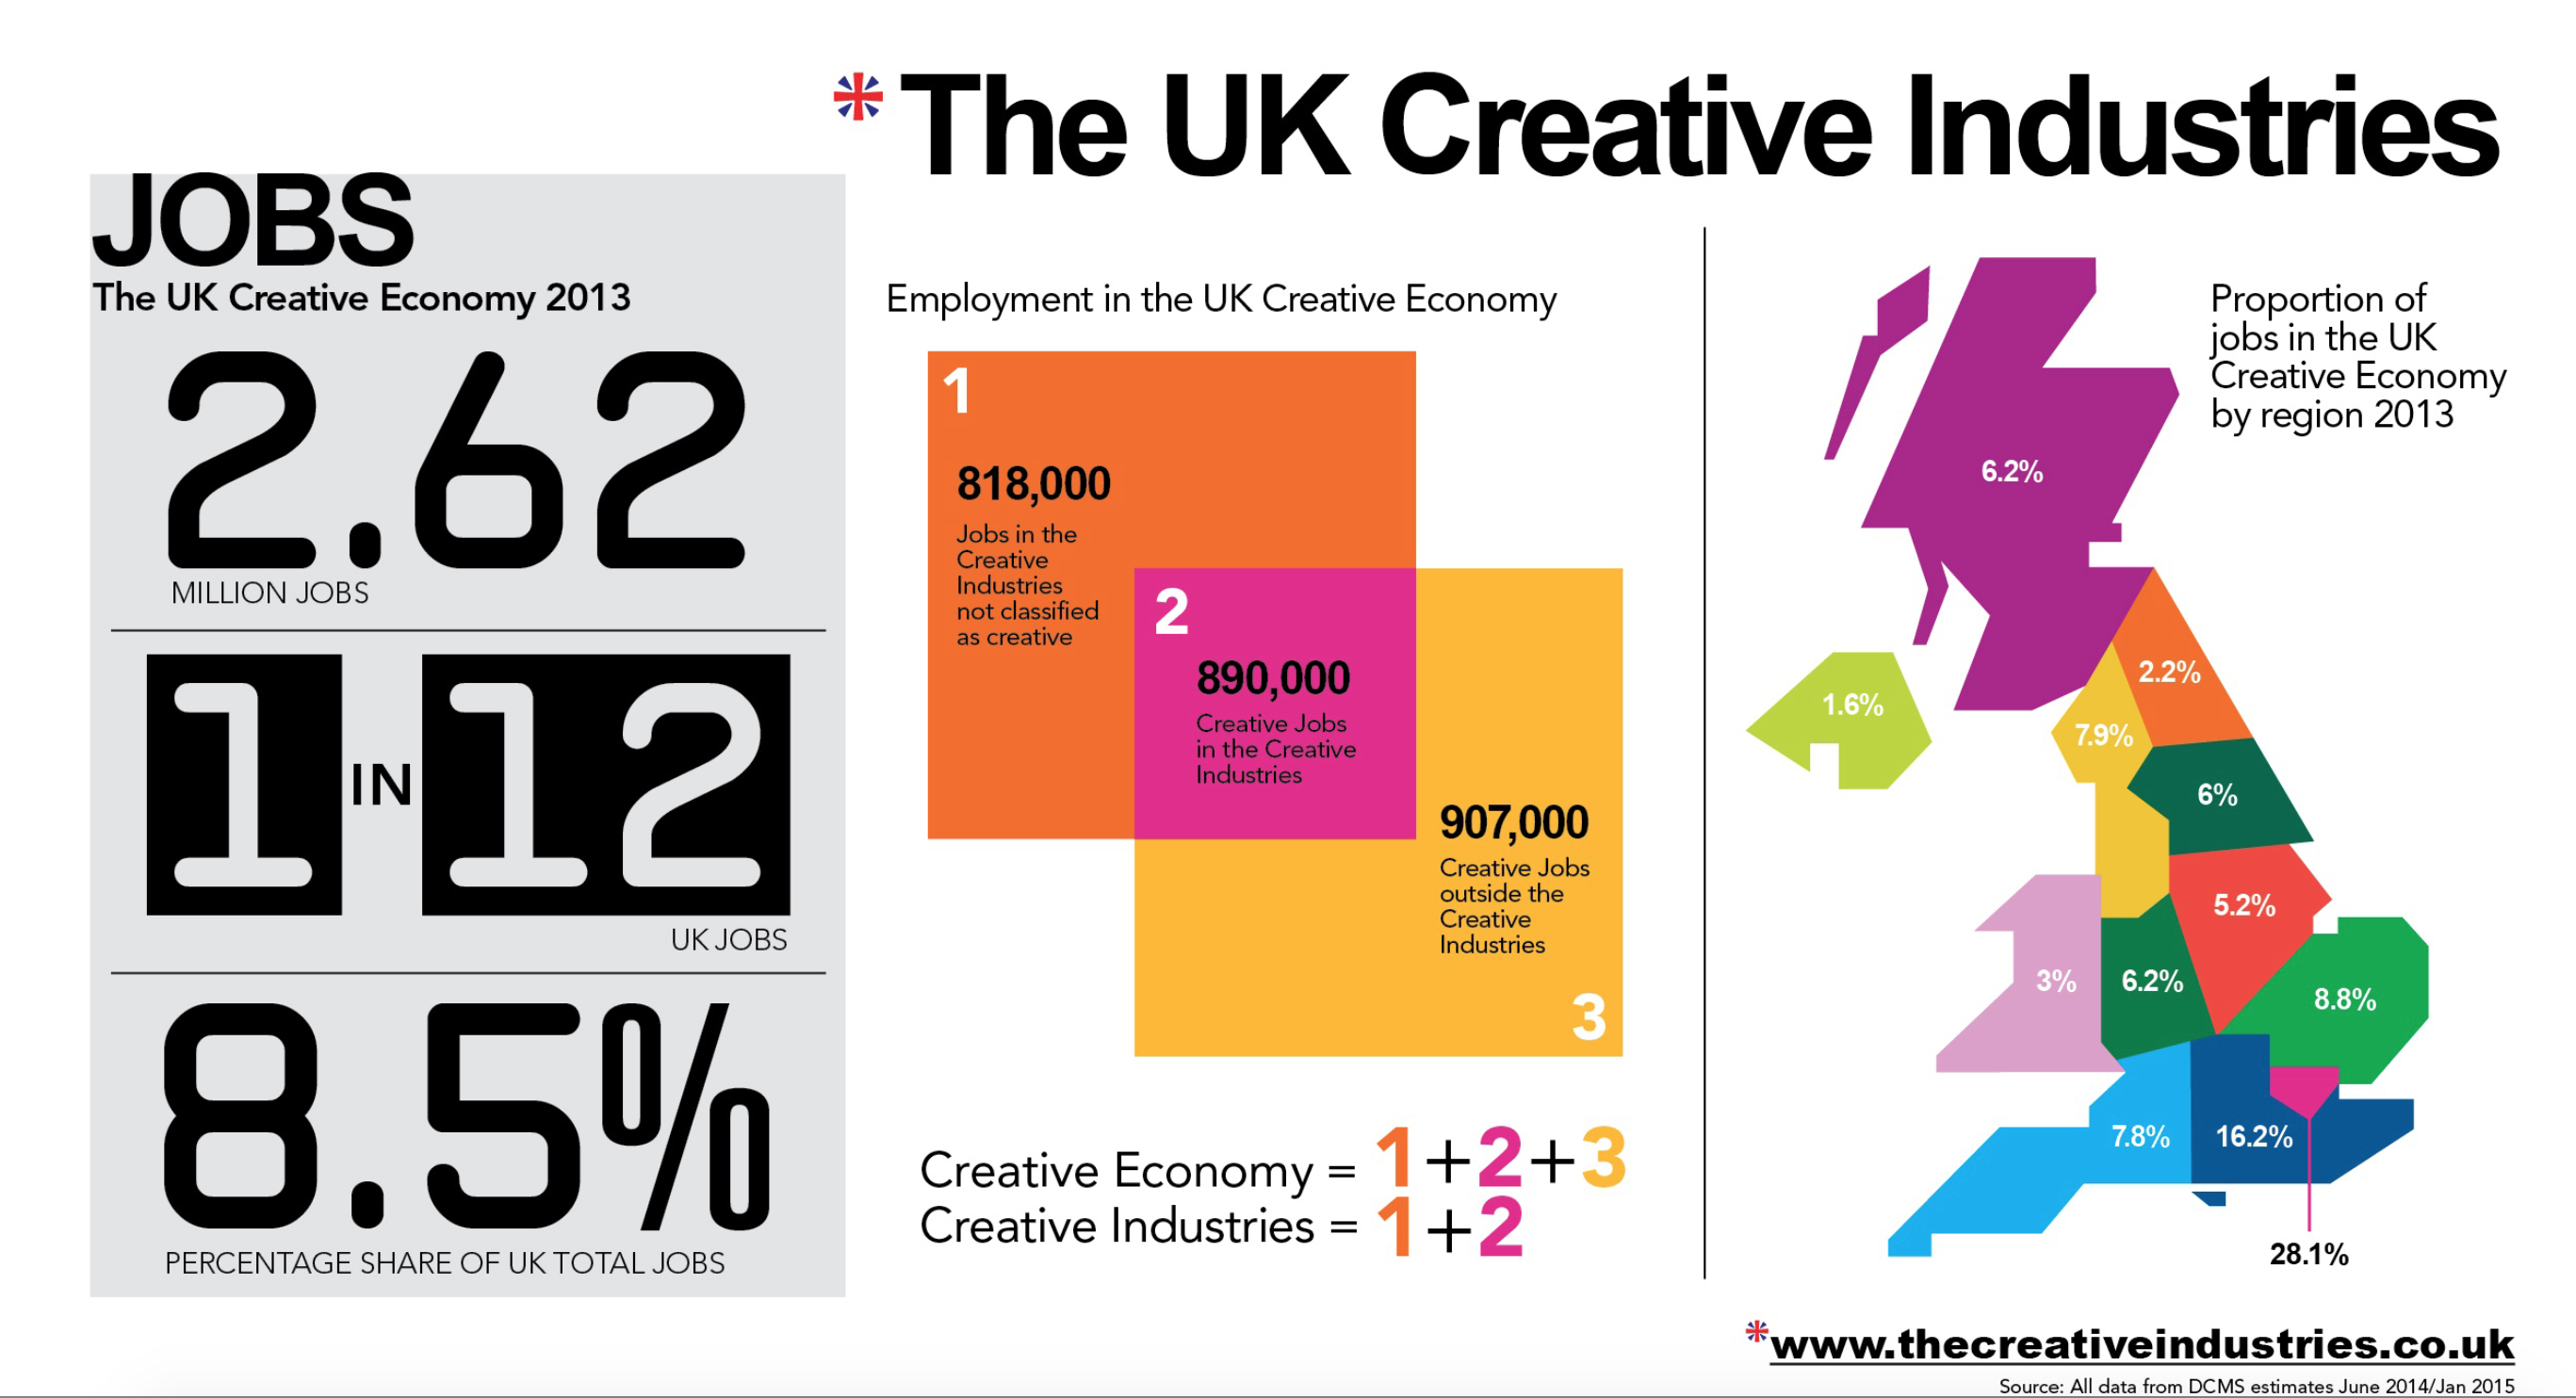 Jobs in the UK Creative Industries